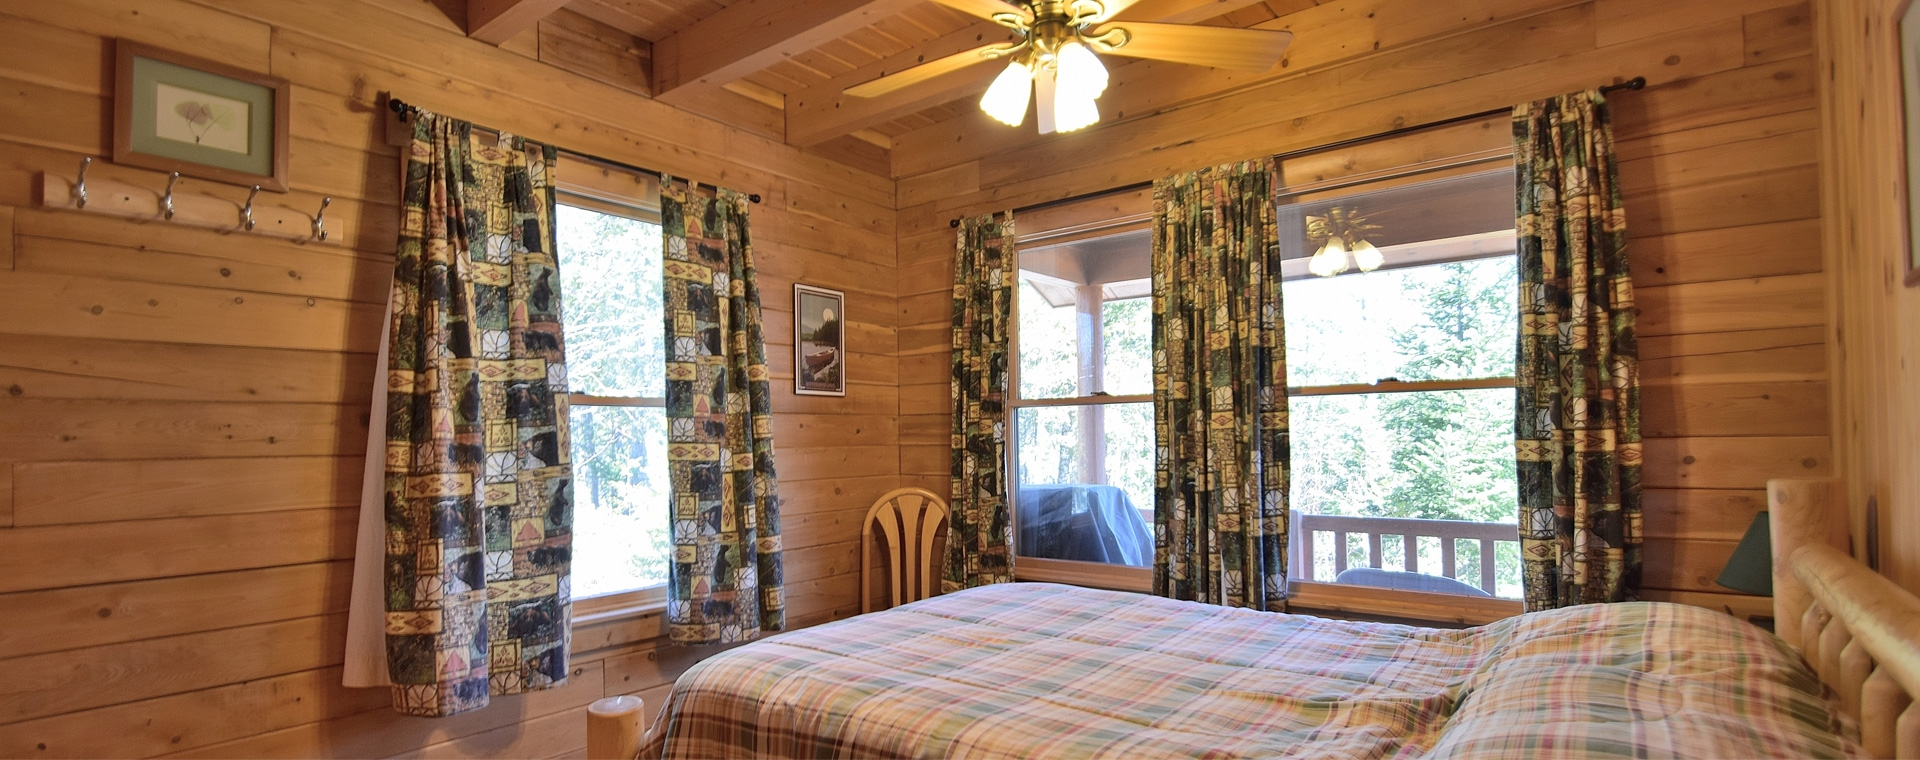 Prong Pond Rental Cabins in Maine